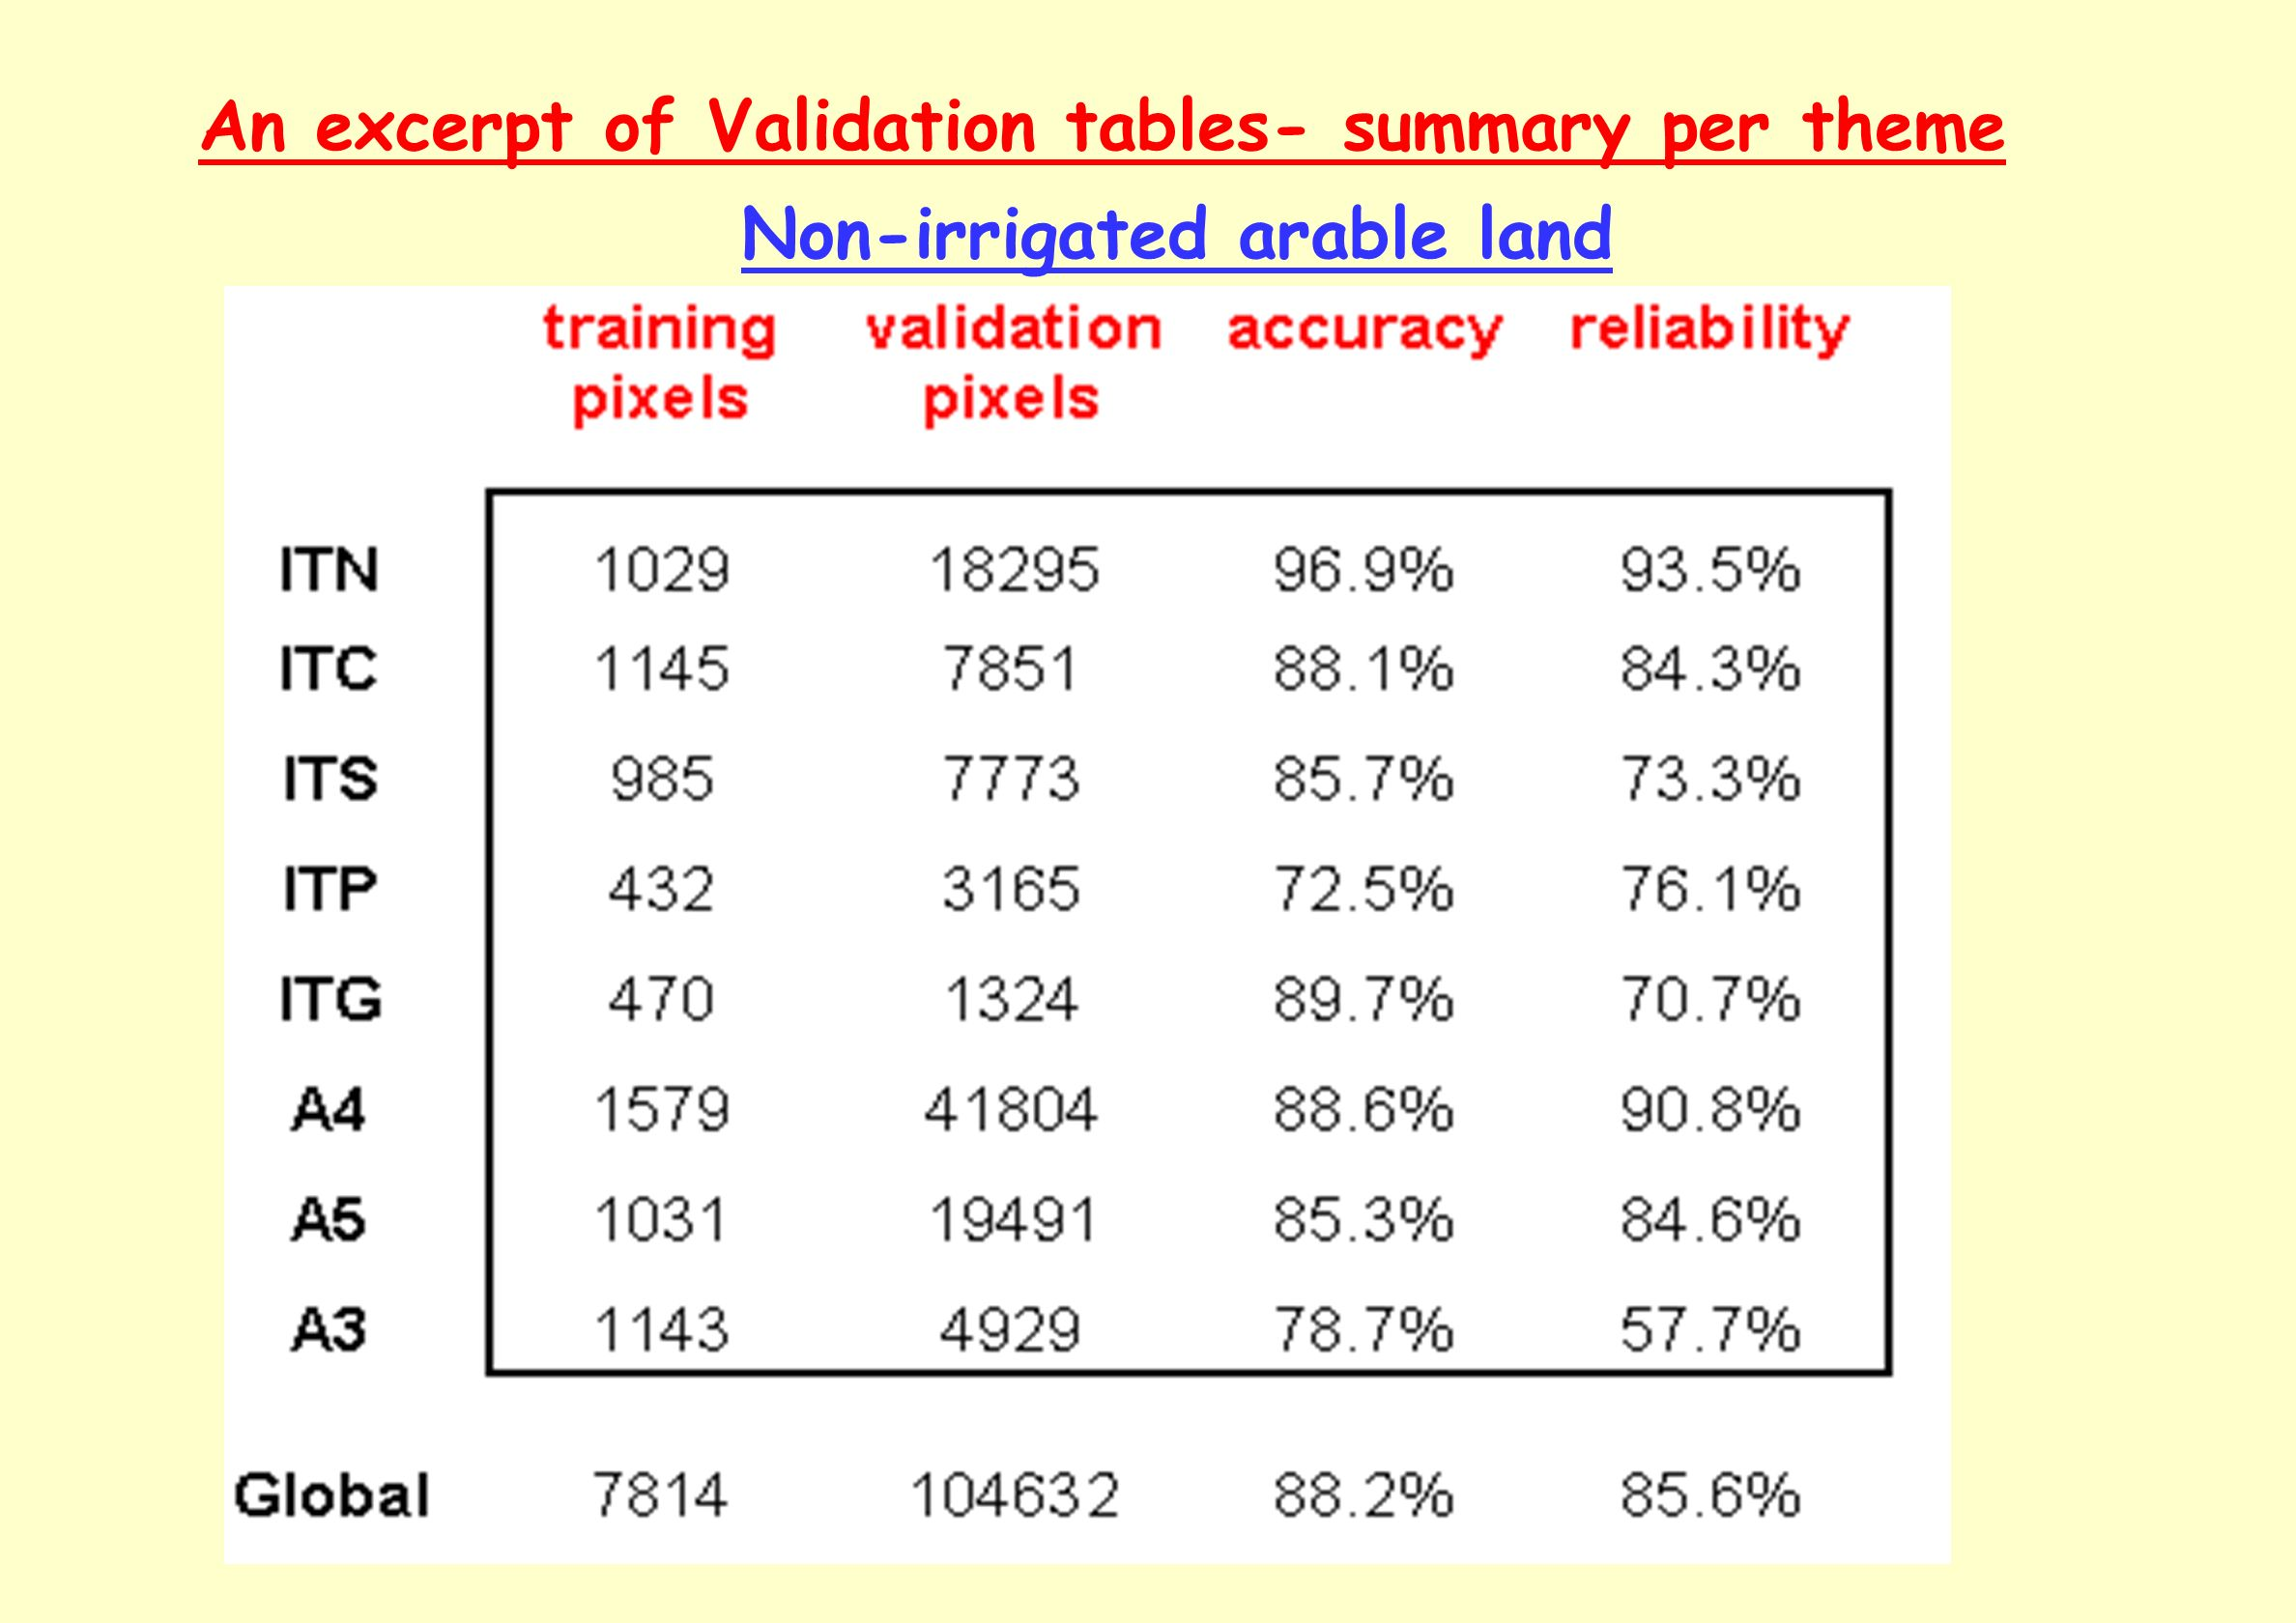 An excerpt of Validation tables- summary per theme